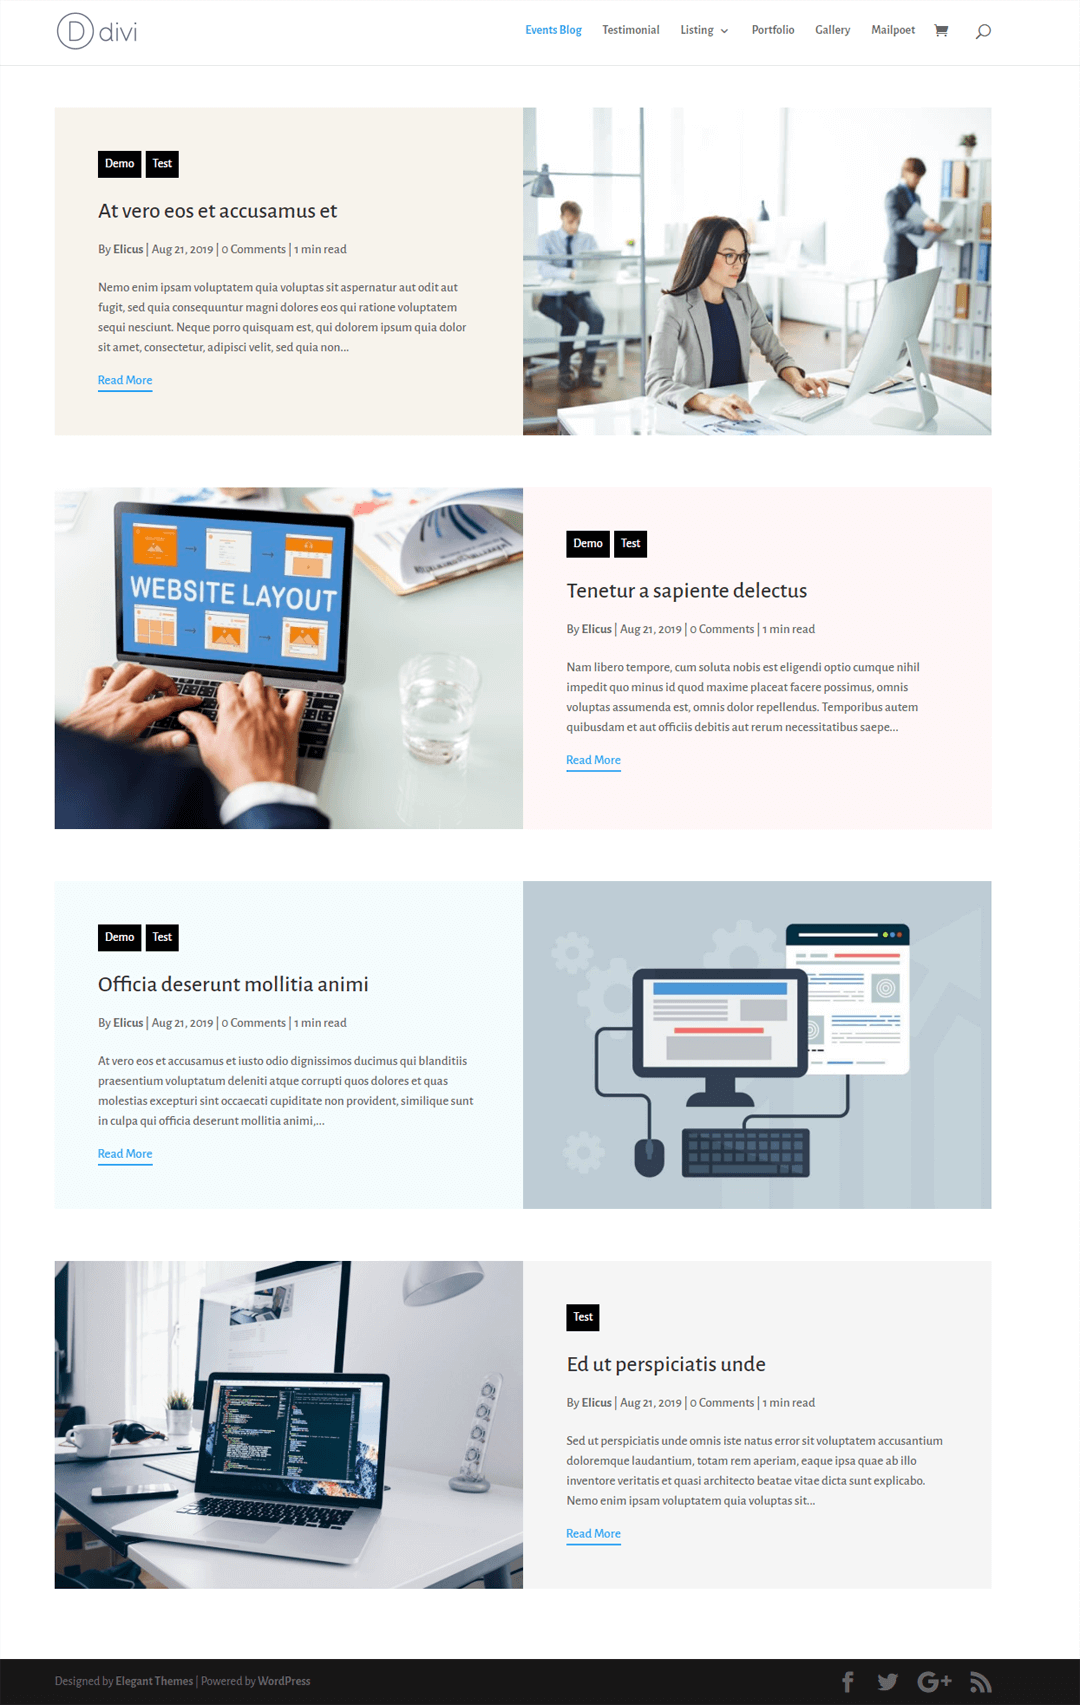 Divi Blog Layout